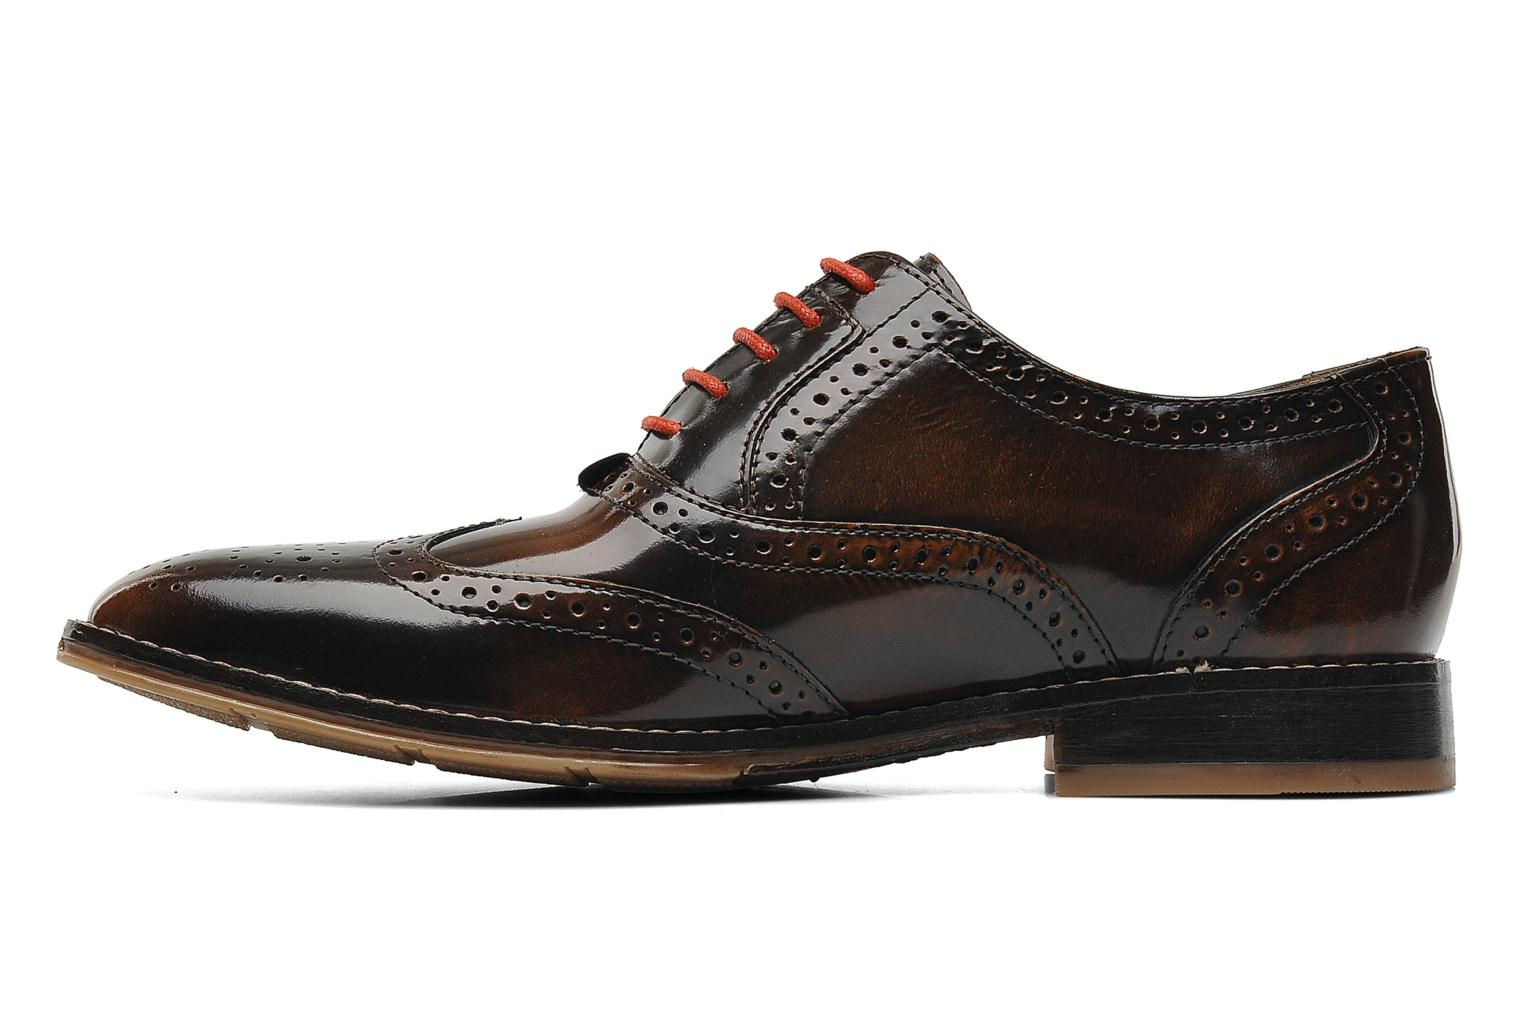 Style Brogue Tan brushed leather